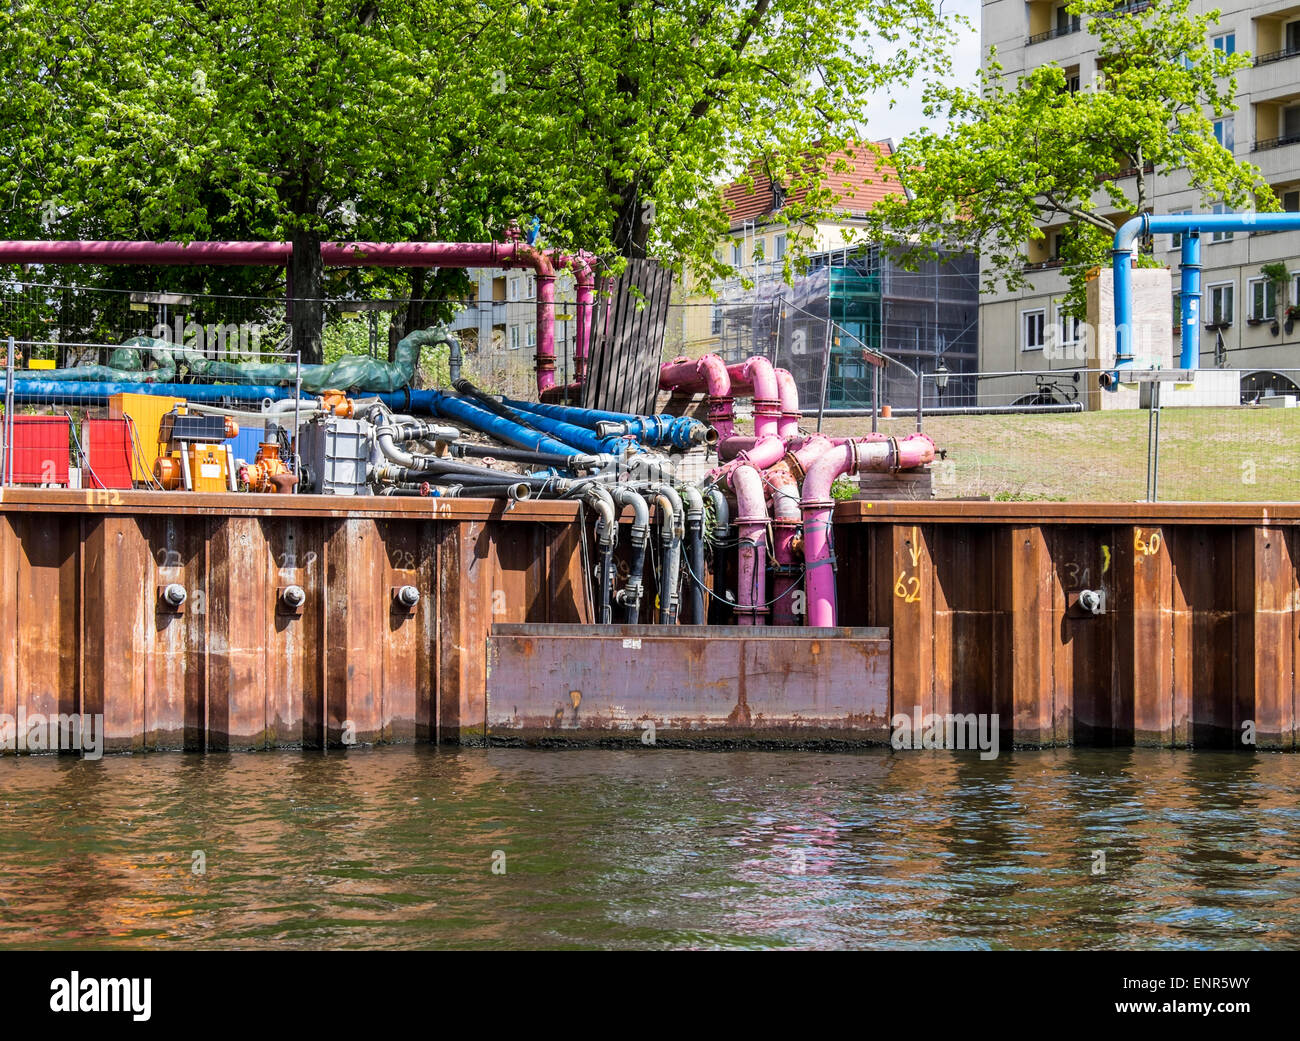 Colourful drainage pipes draining surface water into Spree River from building sites, Berlin - Stock Image